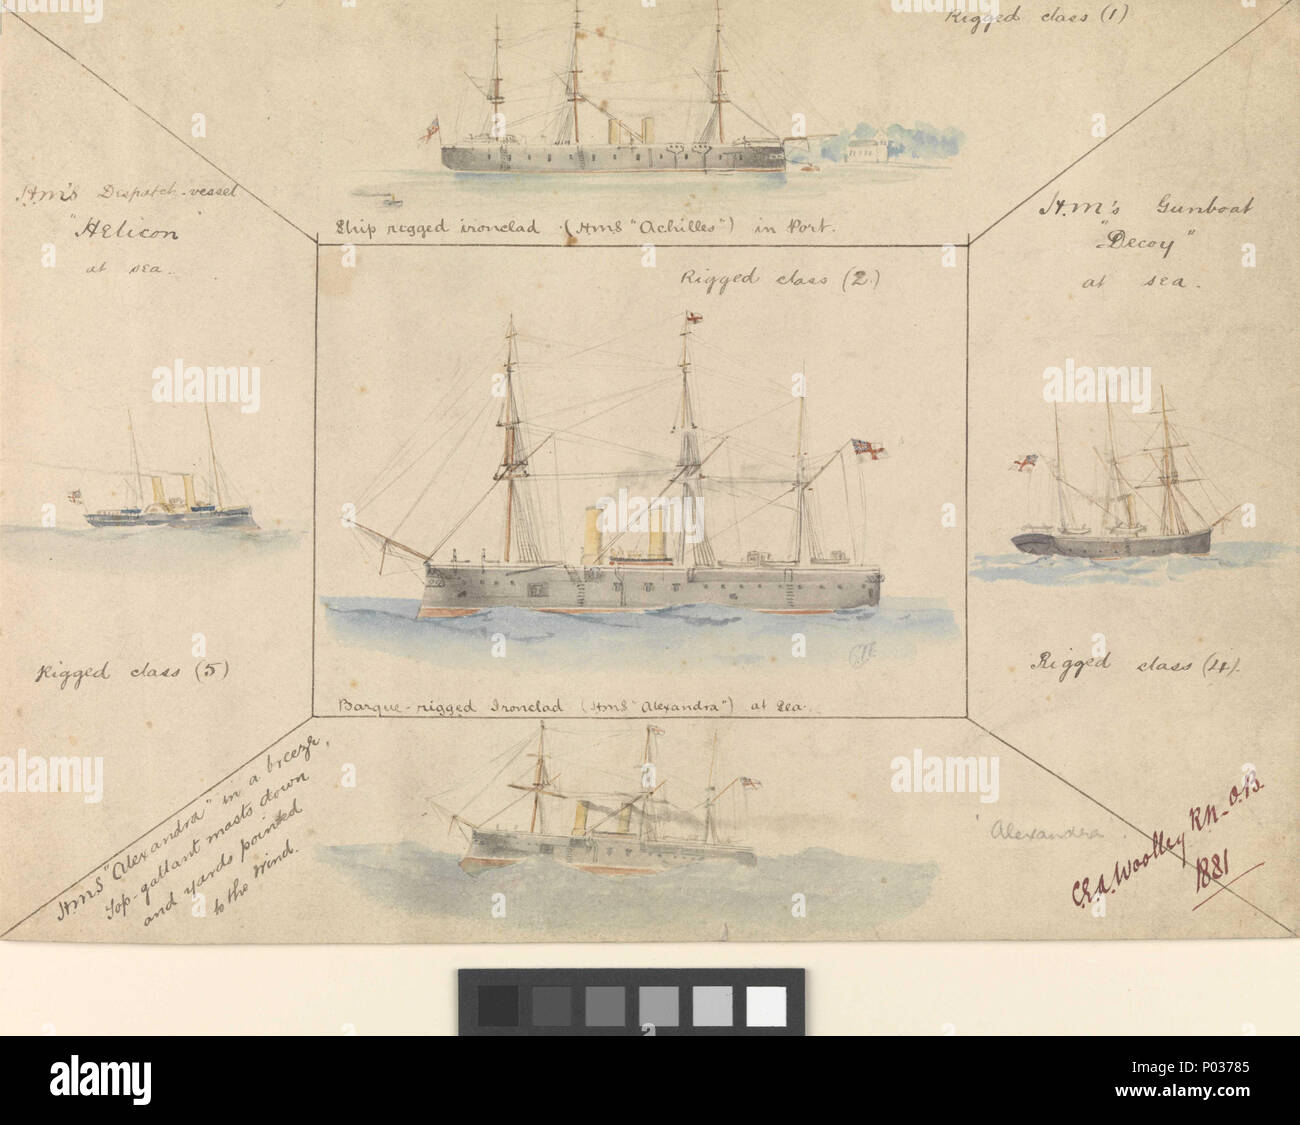 .  English: 1. Barque-rigged ironclad (H.M.S. Alexandra at sea). 2. H.M's Gunboat Decoy at sea. 3. HMS Alexandra in a breeze. 4. H.M's Despatch-vessel Helicon at sea. 5. Ship rigged ironclad (HMS Achilles in port)Signed by artist. 1. Barque-rigged ironclad (H.M.S. Alexandra at sea). 2. H.M's Gunboat Decoy at sea. 3. HMS Alexandra in a breeze. 4. H.M's Despatch-vessel Helicon at sea. 5. Ship rigged ironclad (HMS Achilles in port)  . 1881. Woolley, C E A [artist] 14 1. Barque-rigged ironclad (H.M.S. Alexandra at sea). 2. H.M's Gunboat Decoy at sea. 3. HMS Alexandra in a breeze. 4. H.M's Despatch Stock Photo